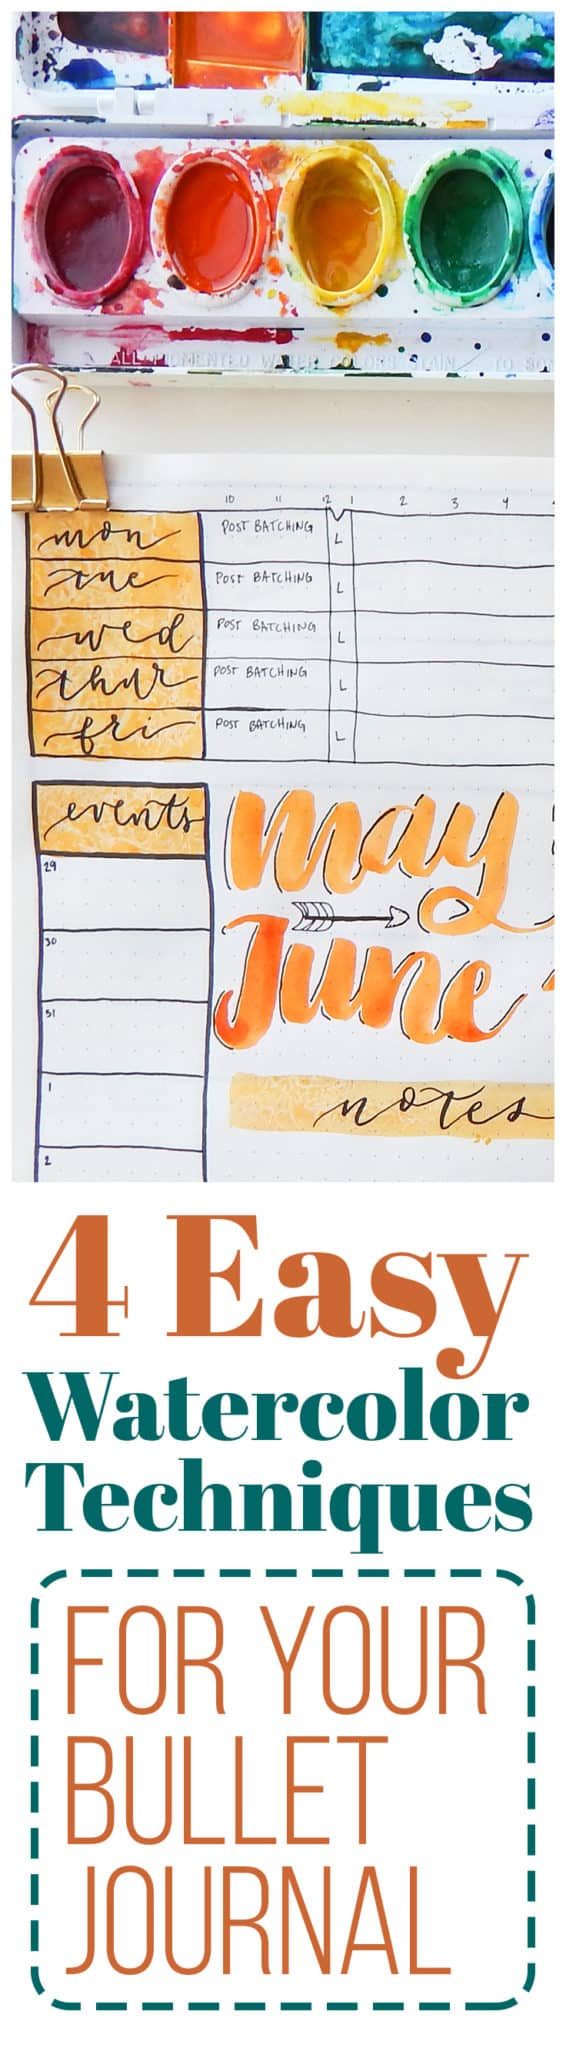 If you've been wanting to start using watercolors in your planner, then this is exactly what you need to get over your fears and get started! These four crazy simple watercolor techniques for your bullet journal will have you throwing down mad watercolor in no time.